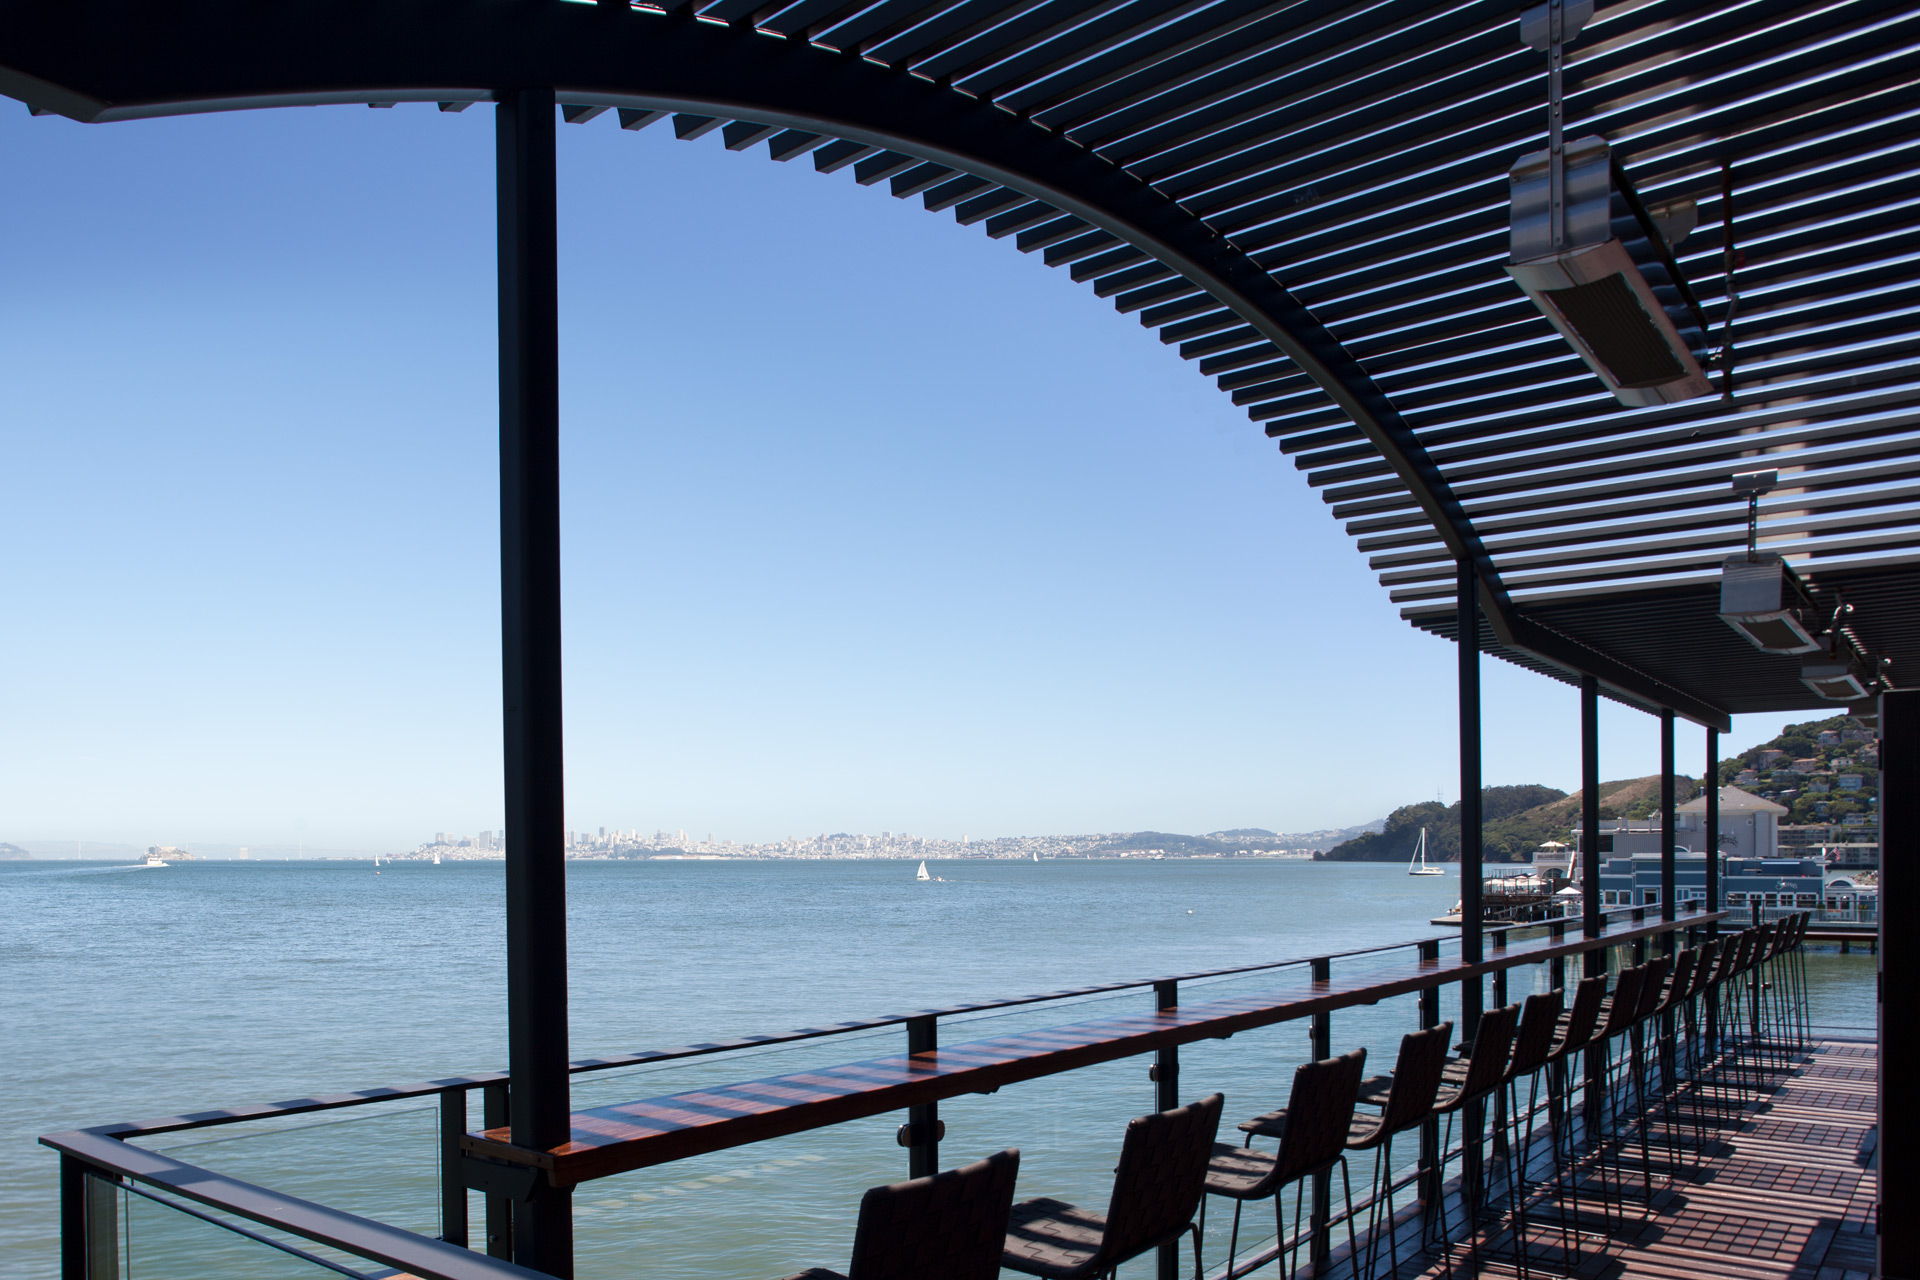 Outdoor dining area lined with black fabric barstools and overlooking the water at the San Francisco Bay. Barrel House Tavern, Sausalito, California